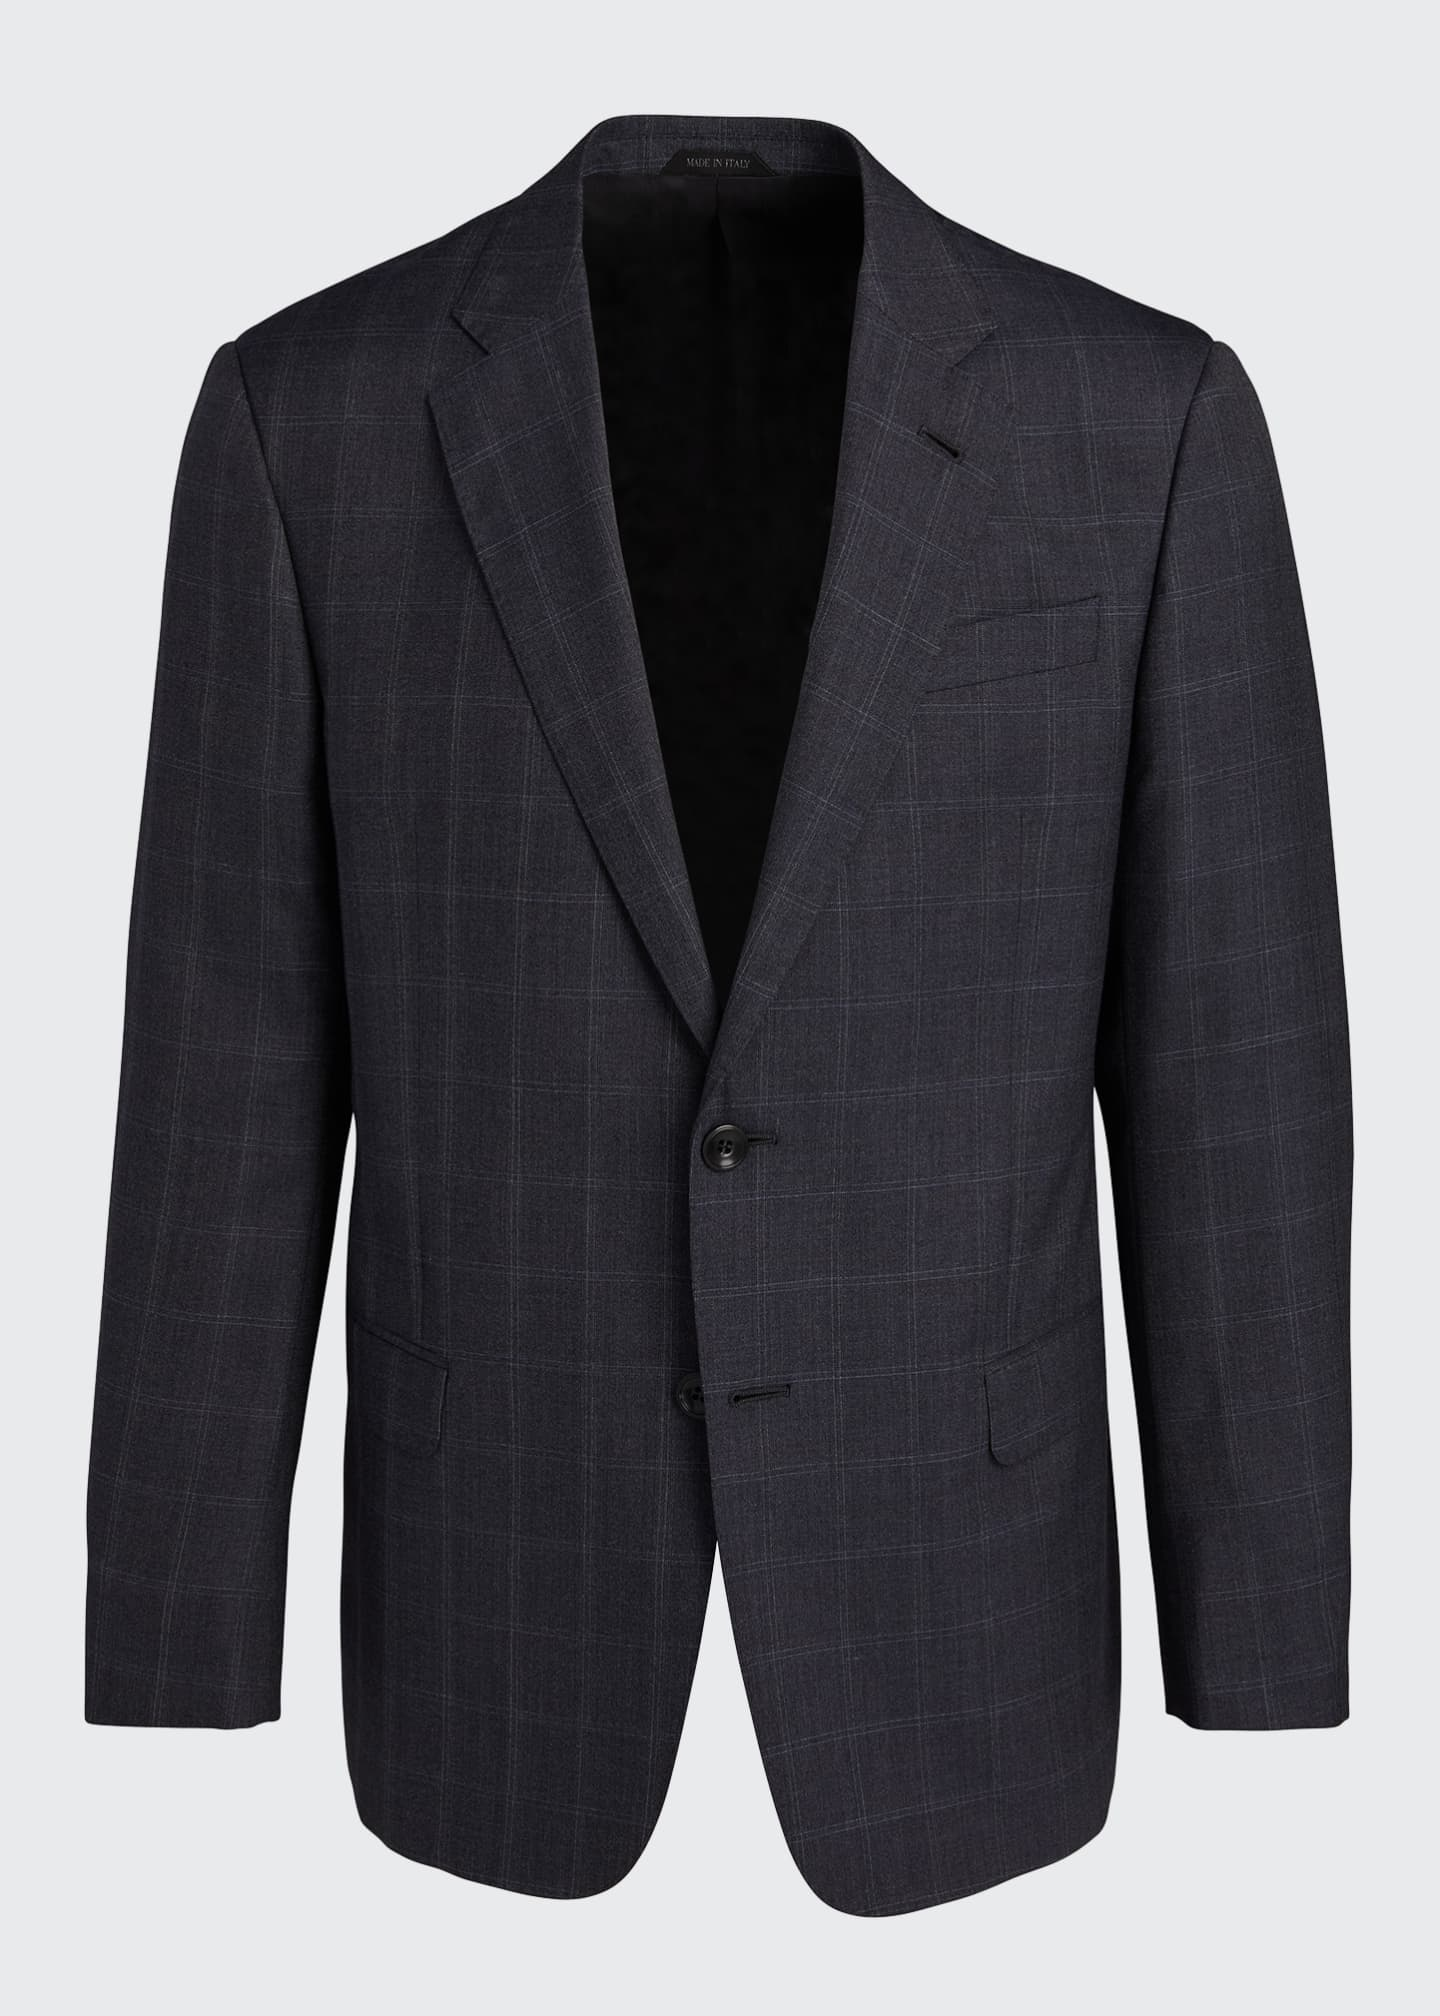 Image 5 of 5: Men's Windowpane Wool Two-Piece Suit